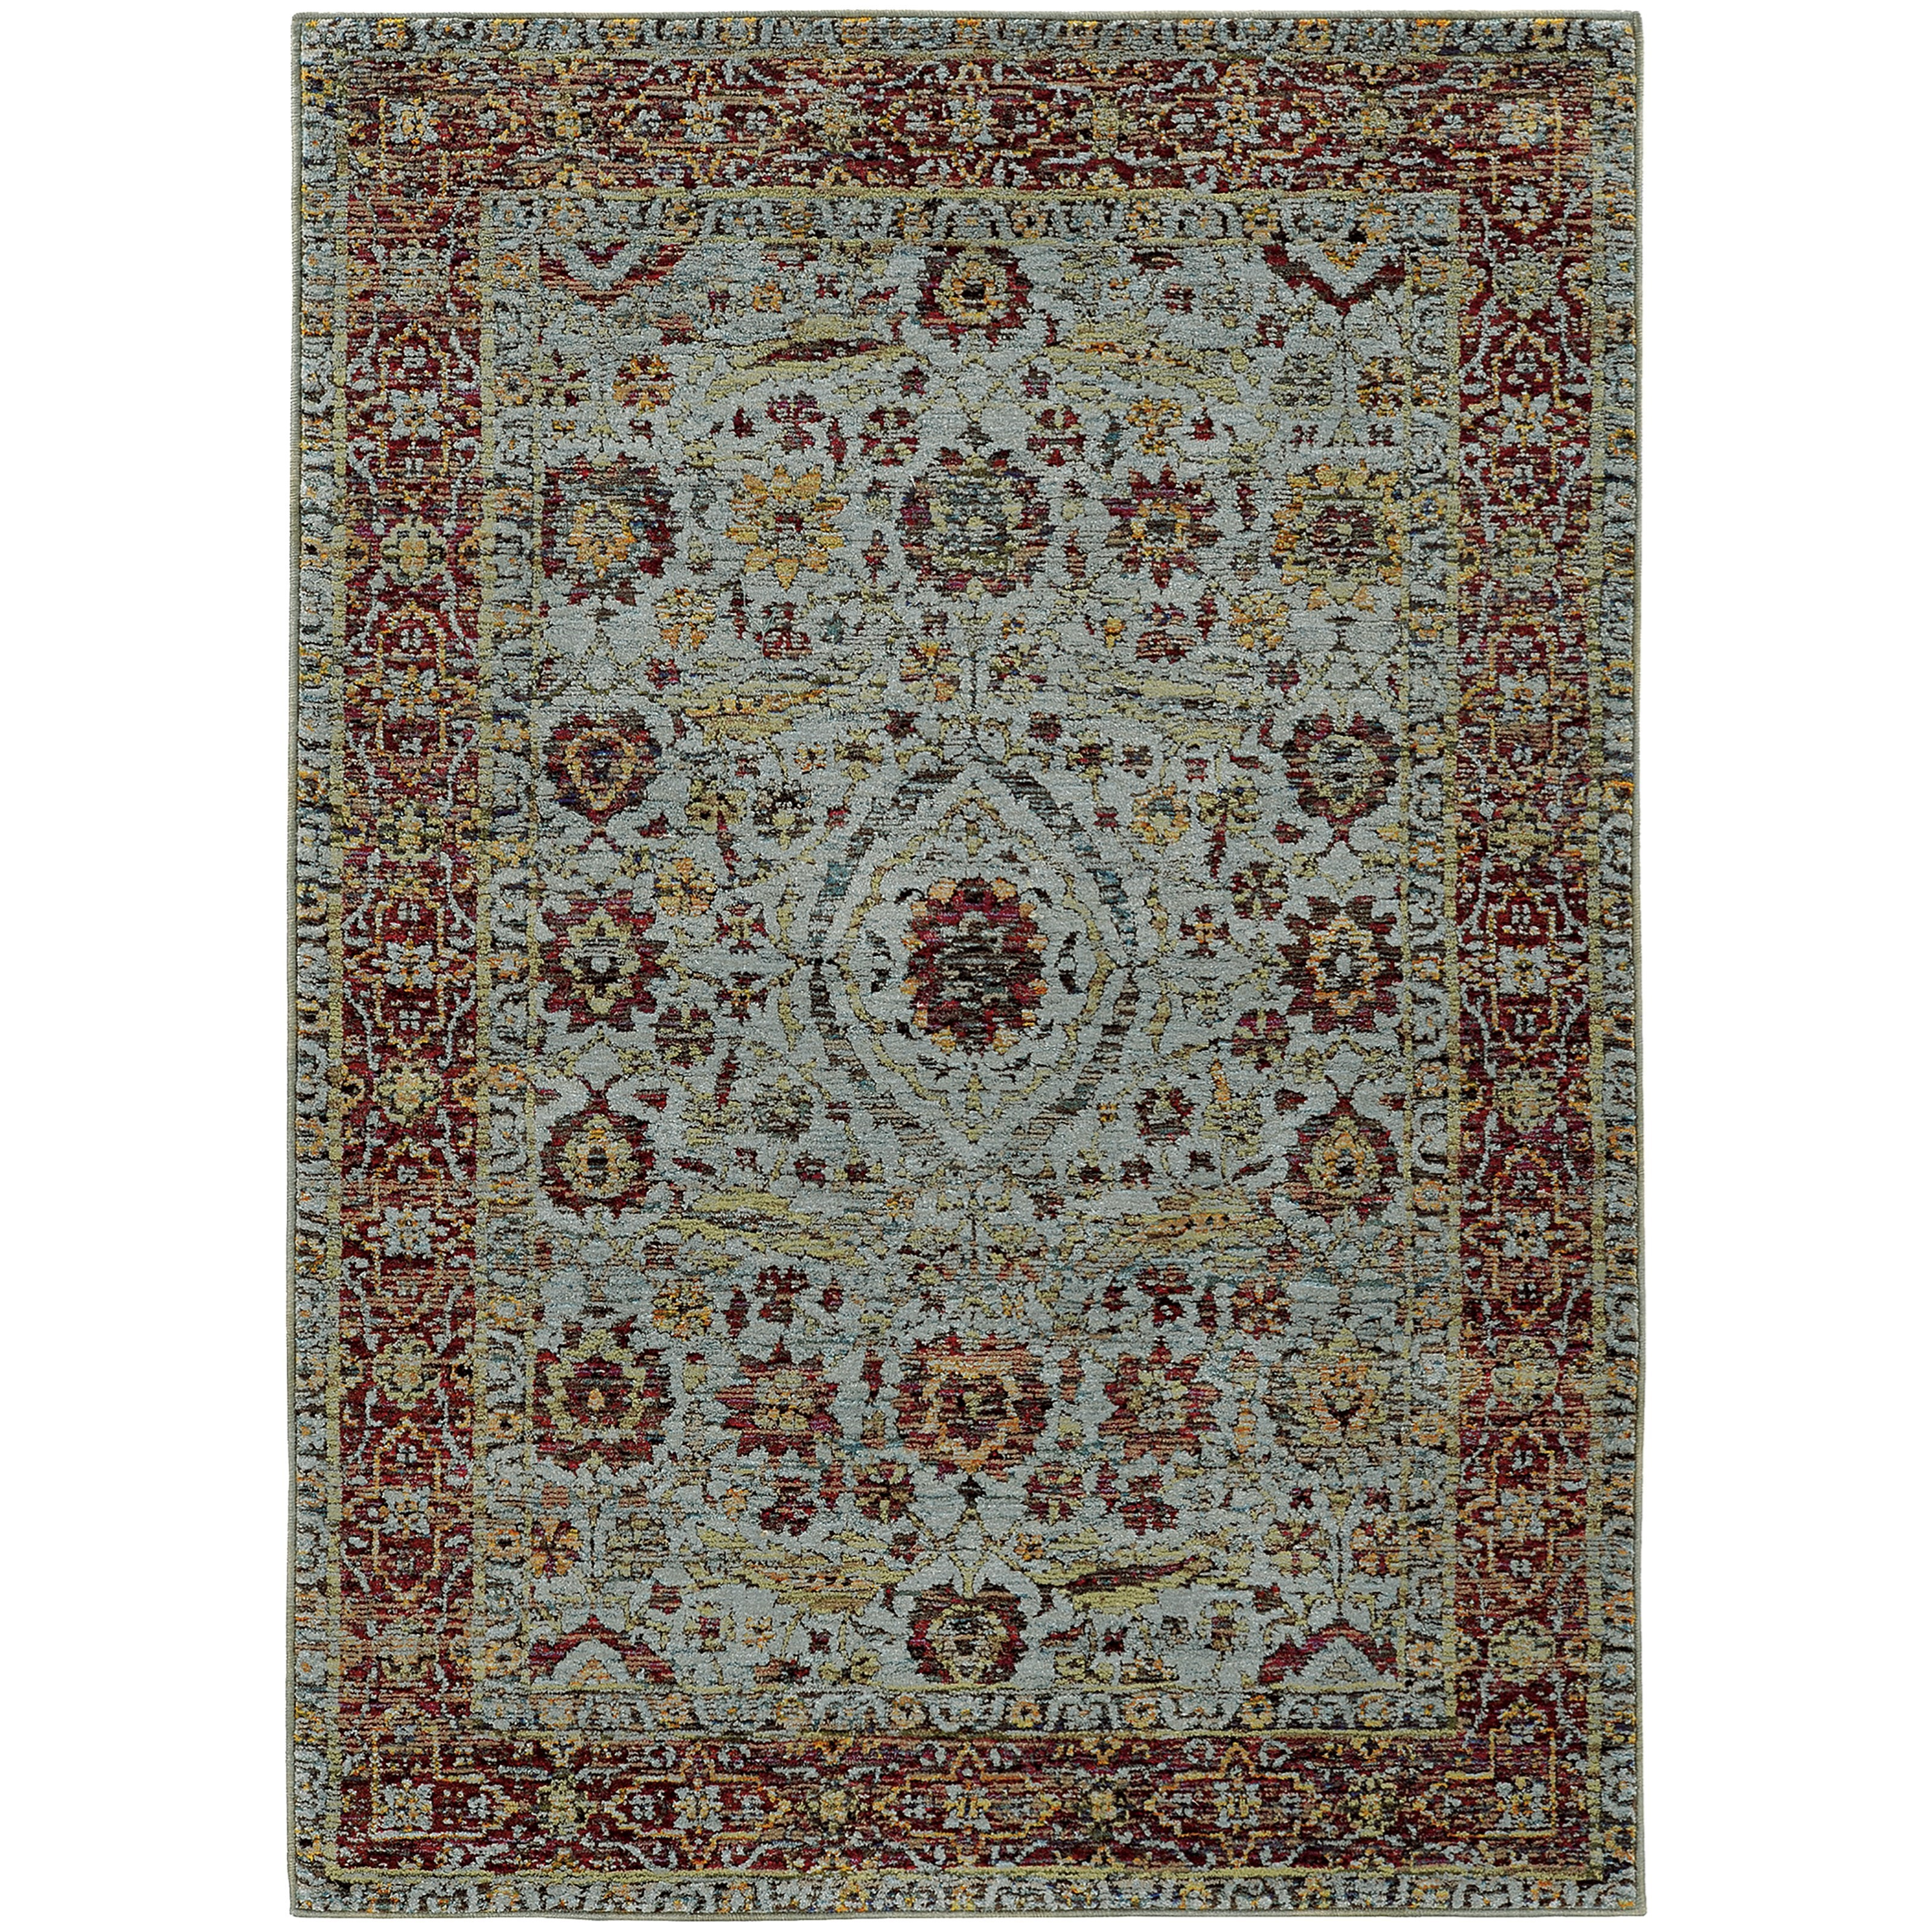 """Andorra 8' 6"""" X 11' 7"""" Casual Blue/ Red Rectangle Ru by Oriental Weavers at Steger's Furniture"""